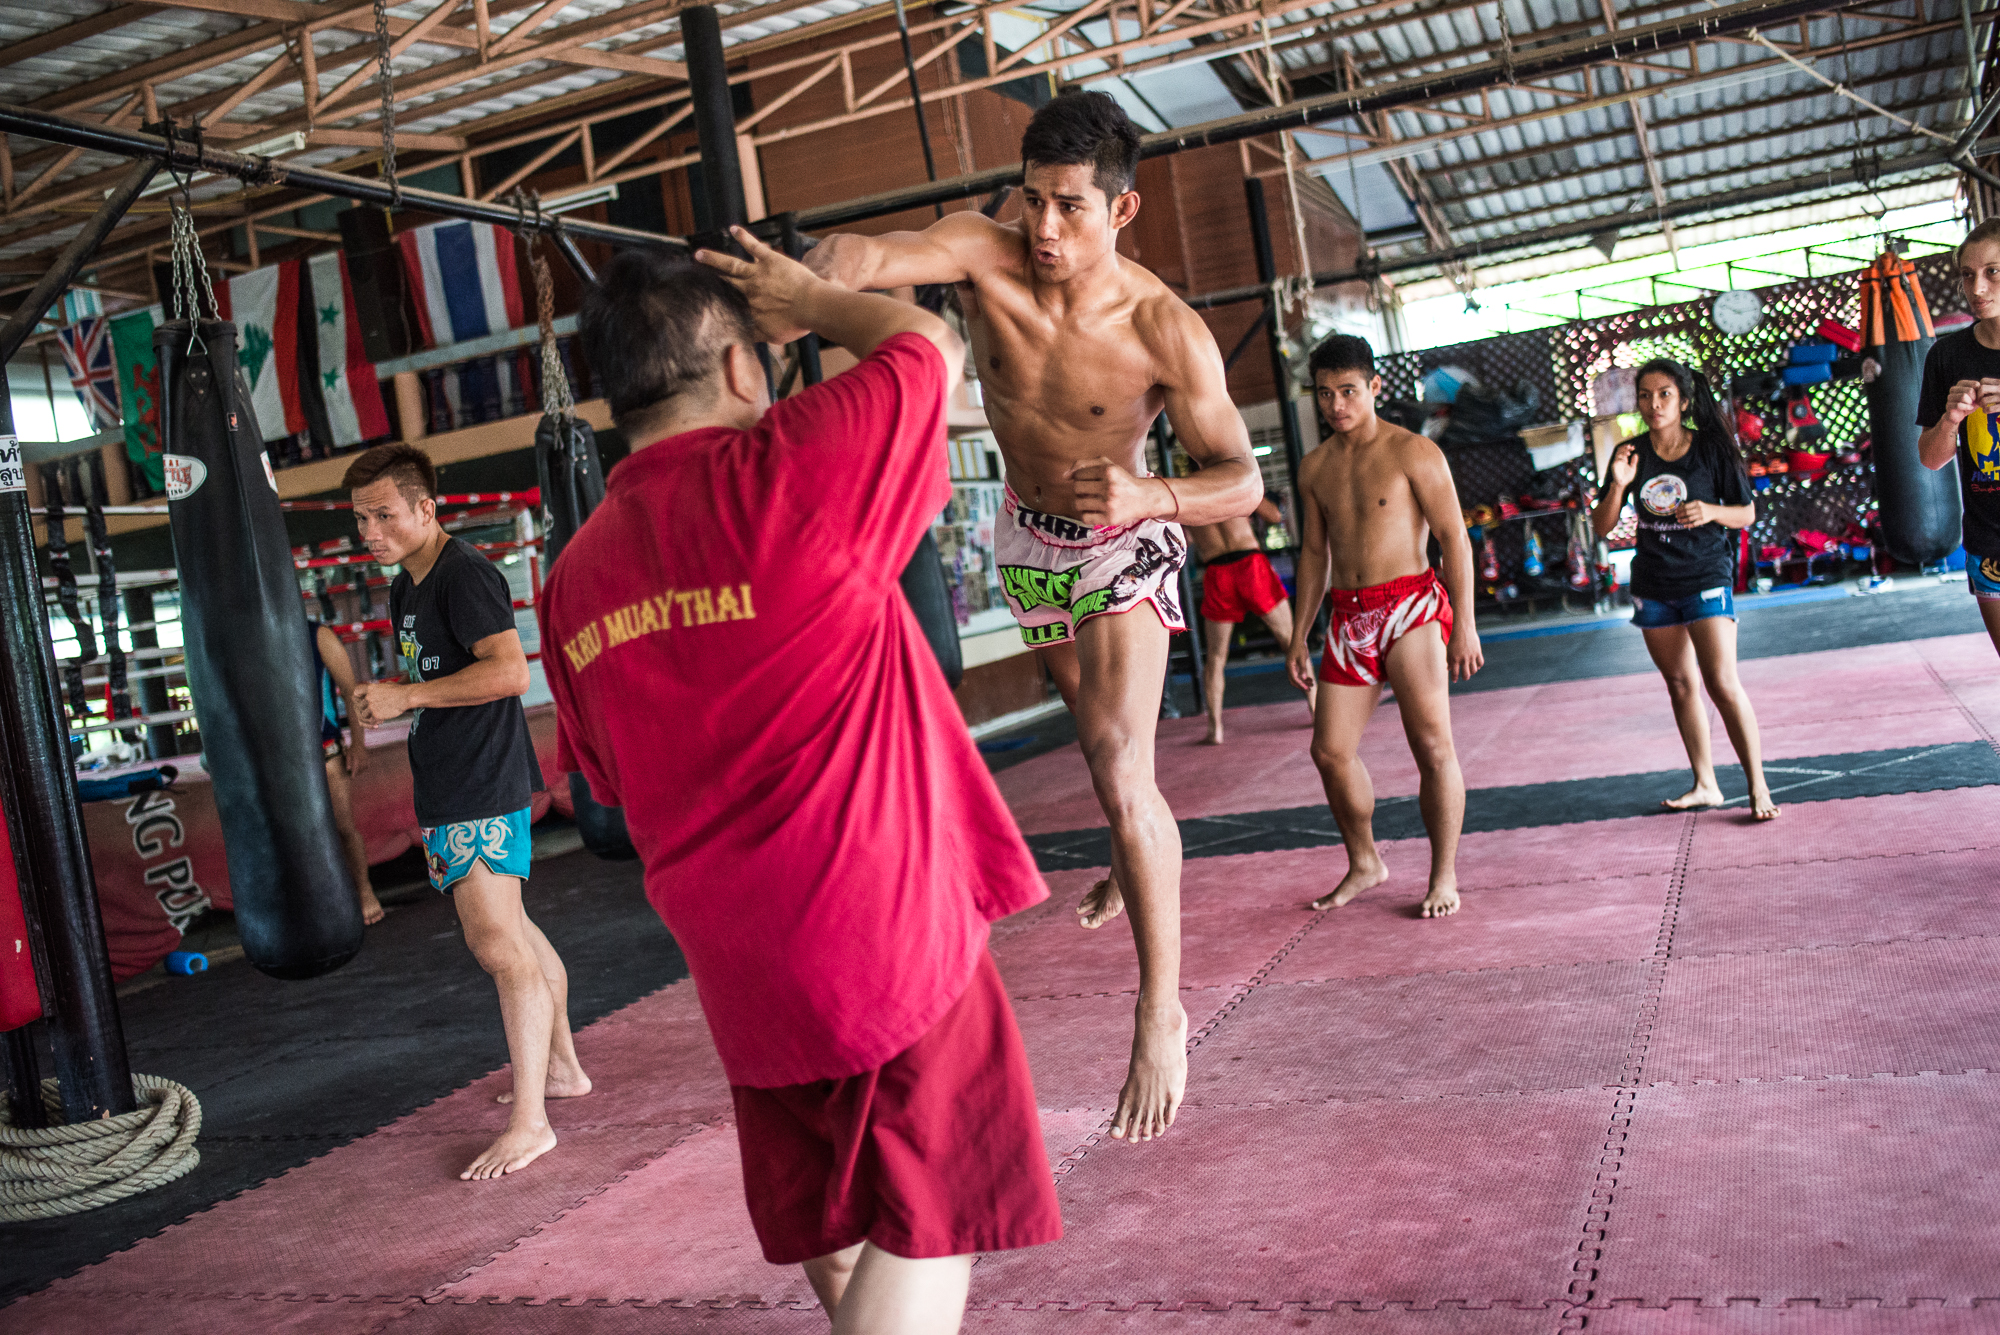 Luktupfah_Camp_Training-75.jpg